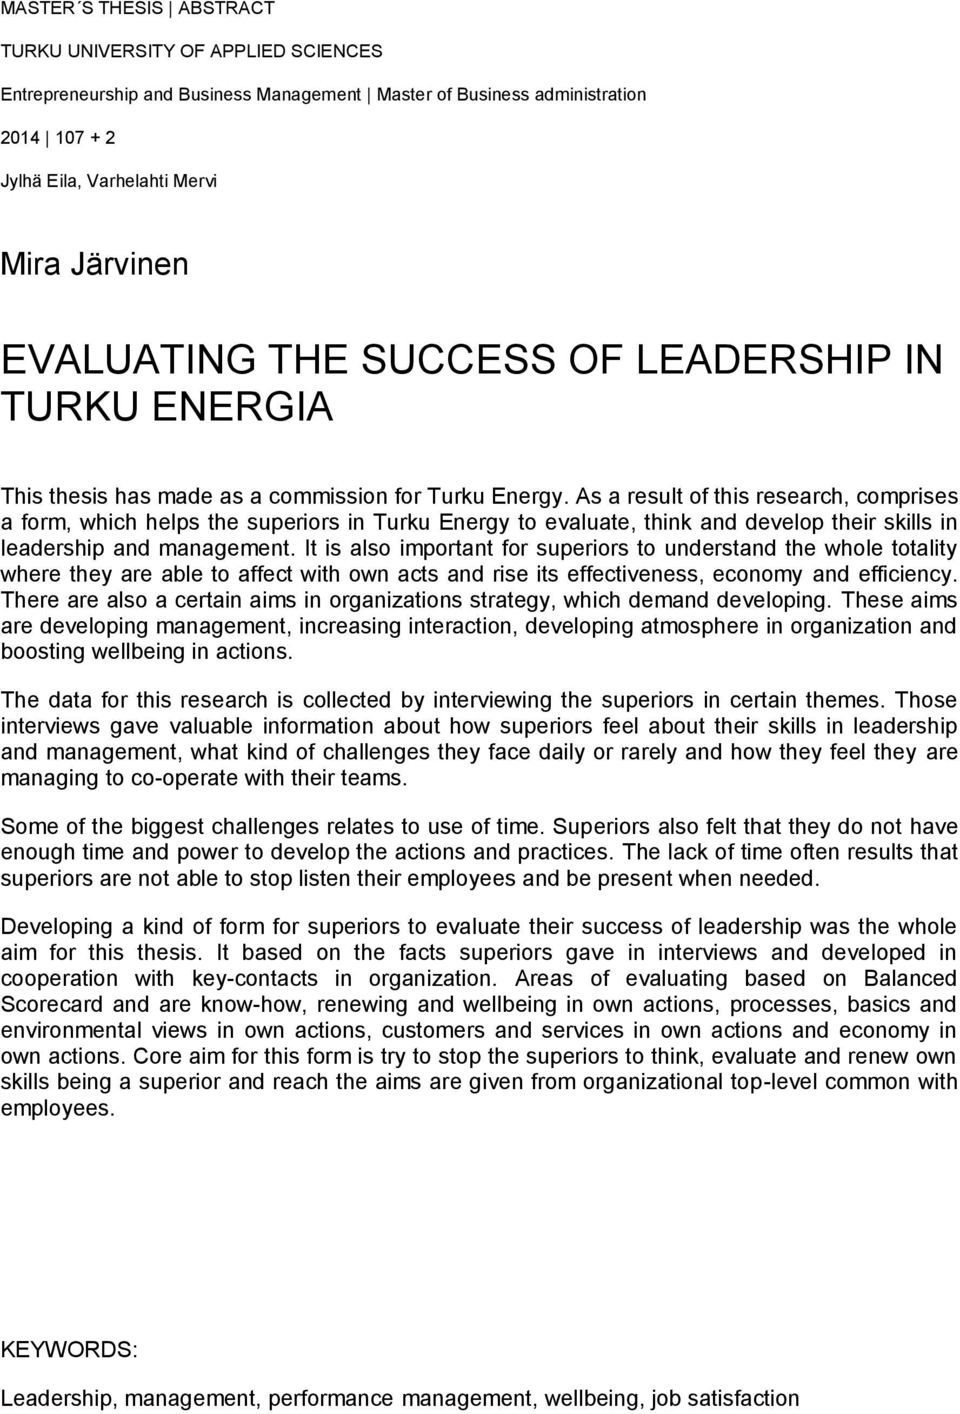 As a result of this research, comprises a form, which helps the superiors in Turku Energy to evaluate, think and develop their skills in leadership and management.